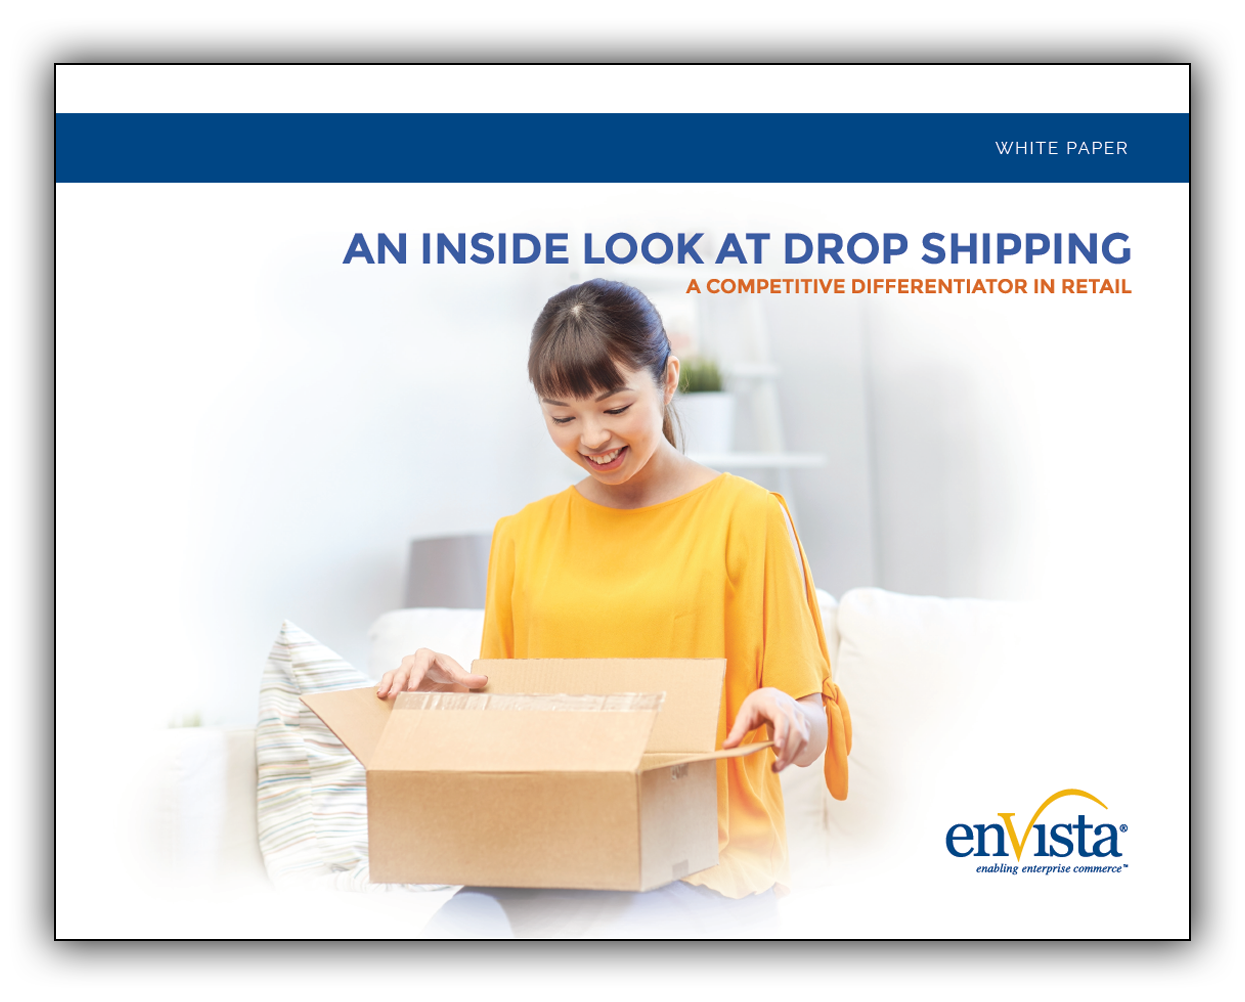 Image_an-inside-look-at-drop-shipping.png